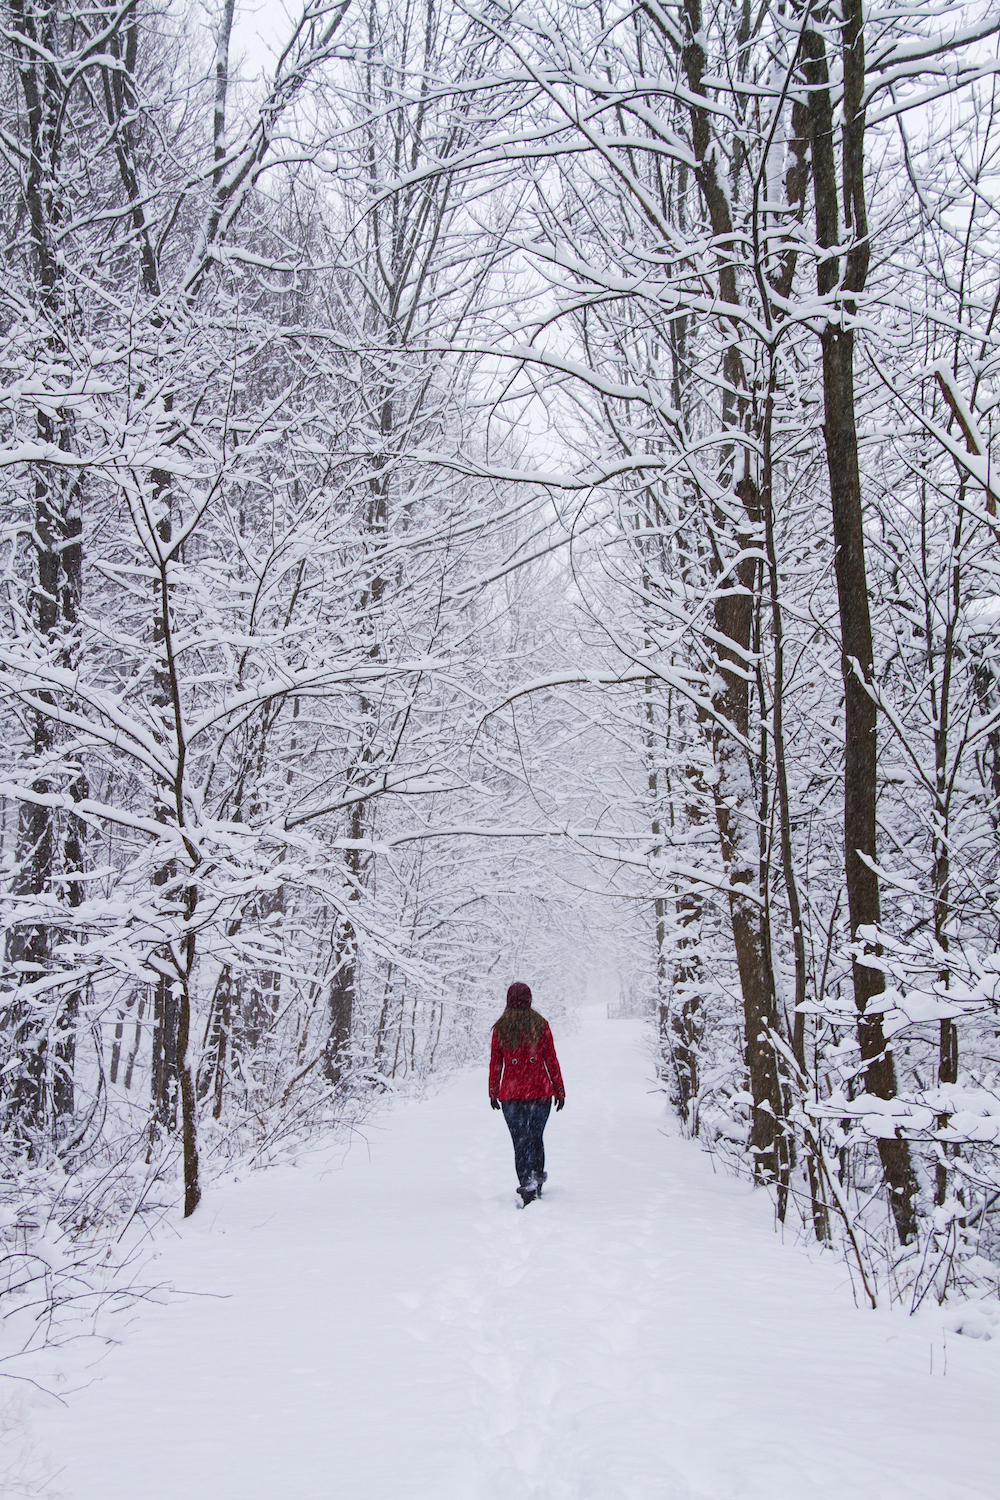 5 Reasons to Spend More Time Outside—Even When It's Cold